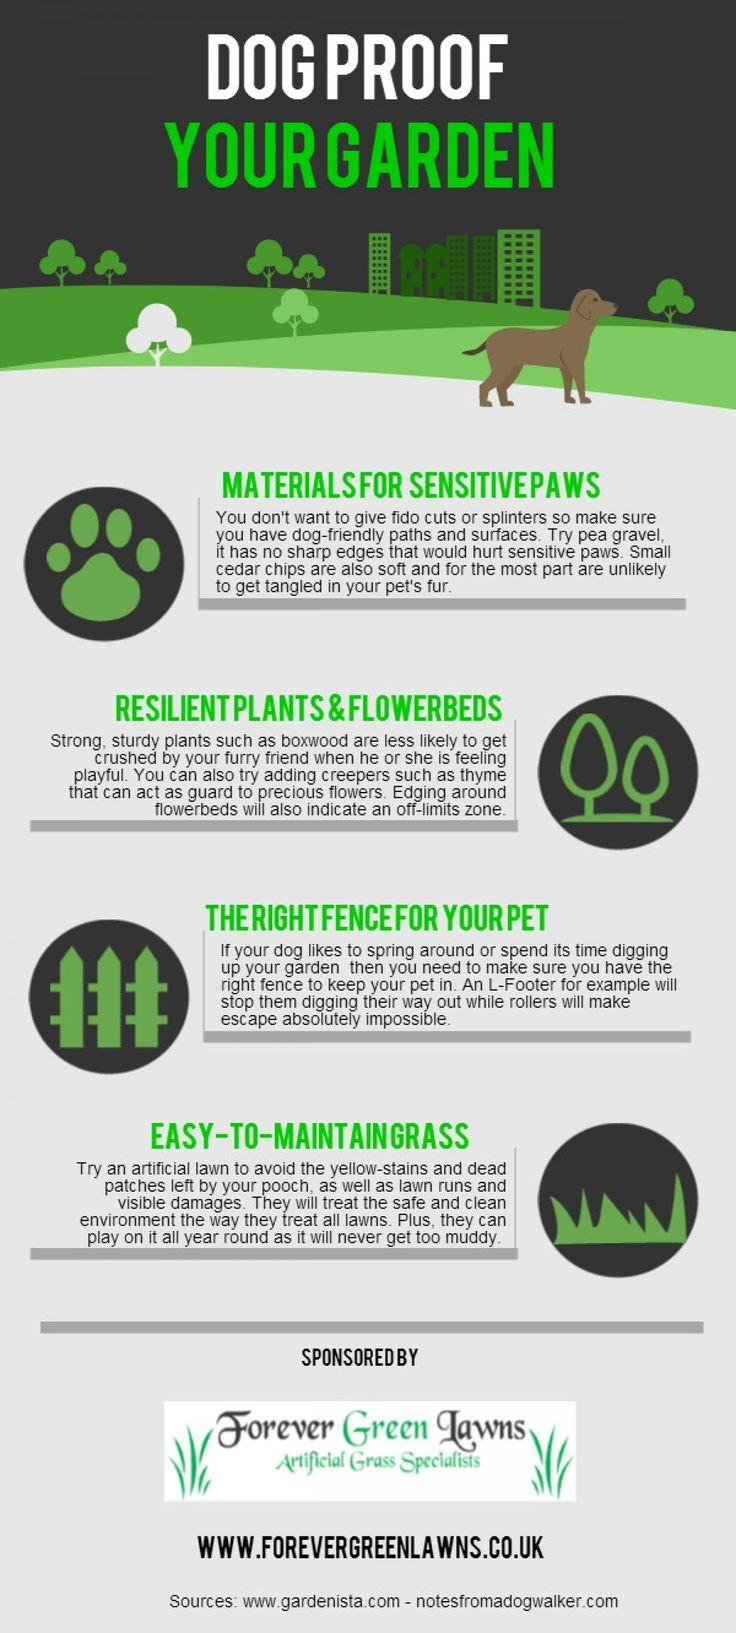 How To #Dog Proof Your #Garden. Great #Infographic by Forever Green Lawns. http://www.forevergreenlawns.co.uk